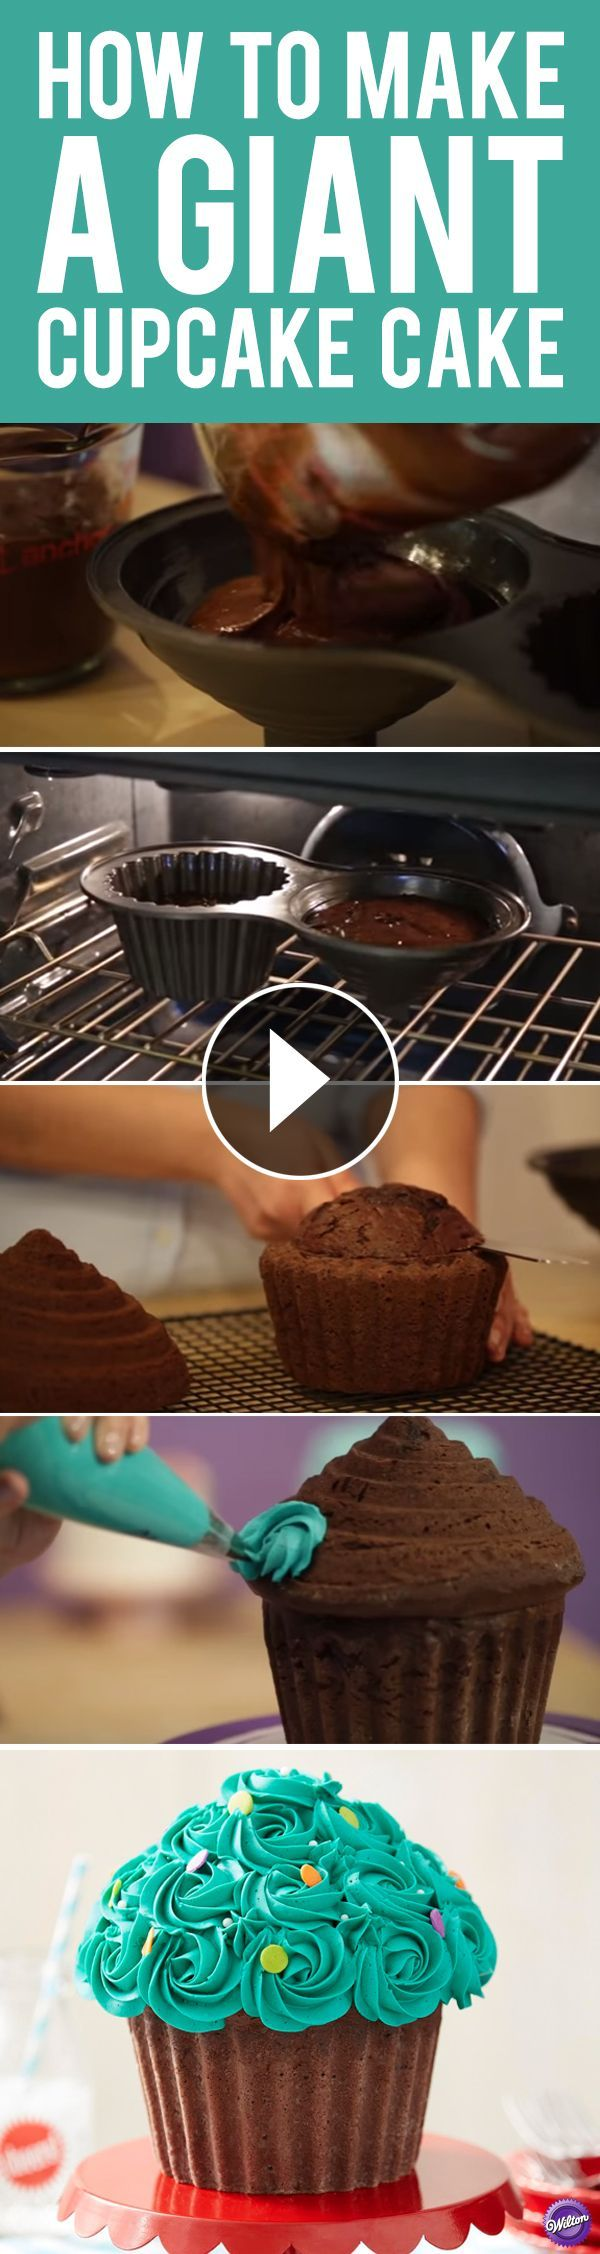 How to Make a Giant Cupcake Cake - Learn the tips and tricks of baking and decorating a giant cupcake cake using the Wilton Dimensions Giant Cupcake Pan!